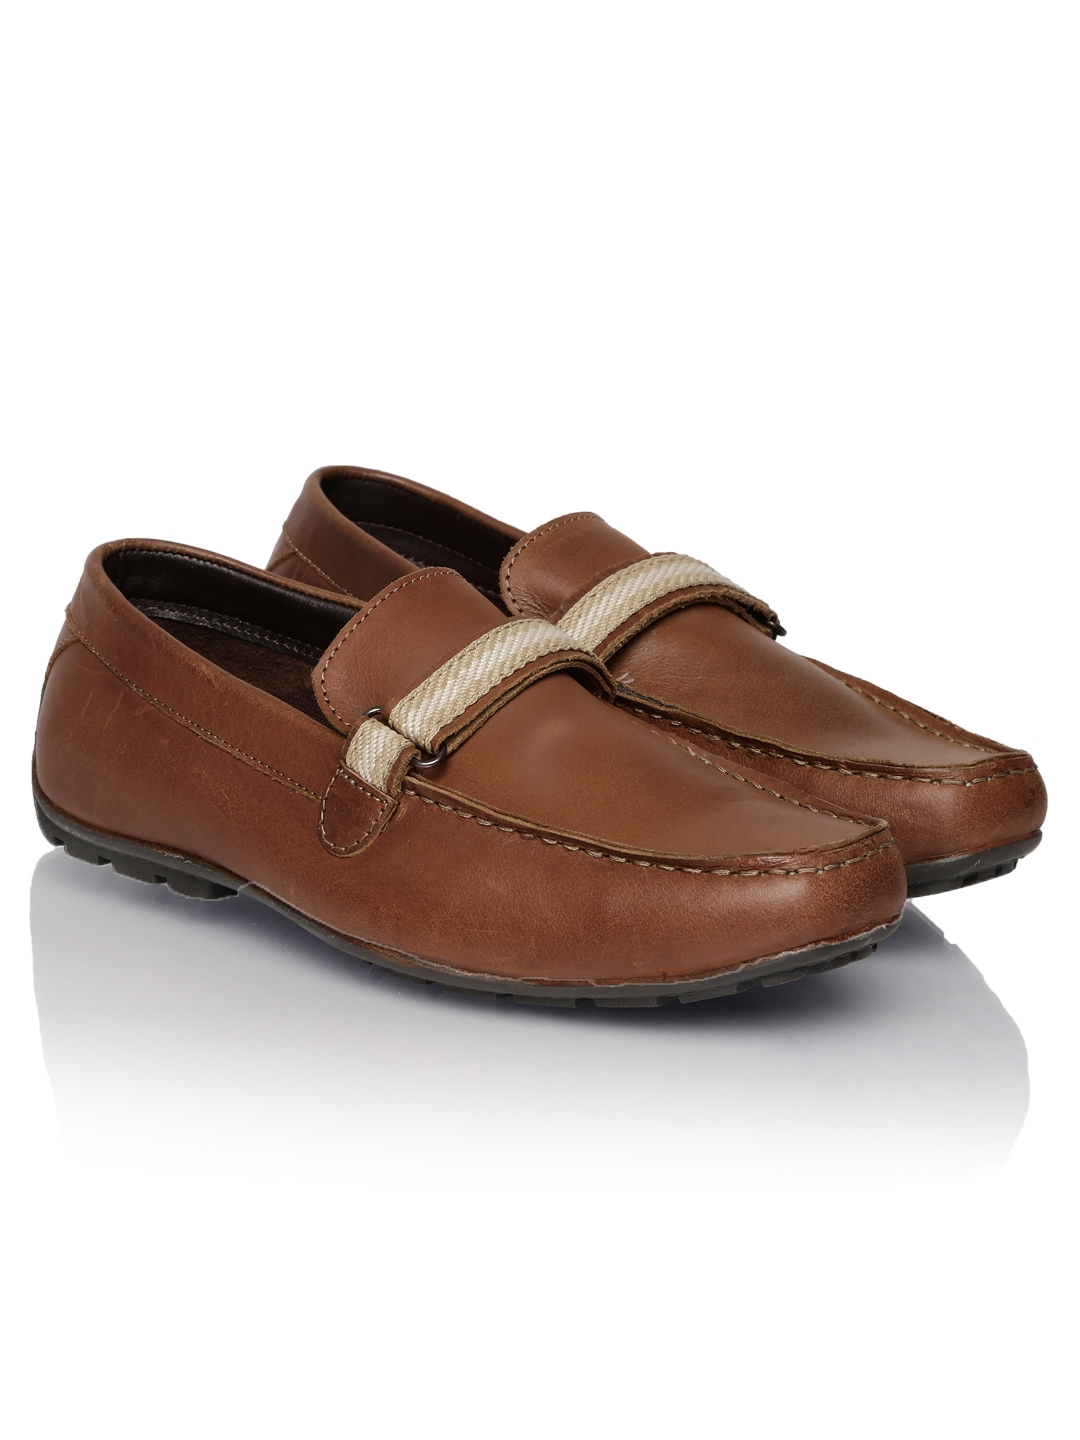 myntra numero uno brown leather loafers 675599 buy